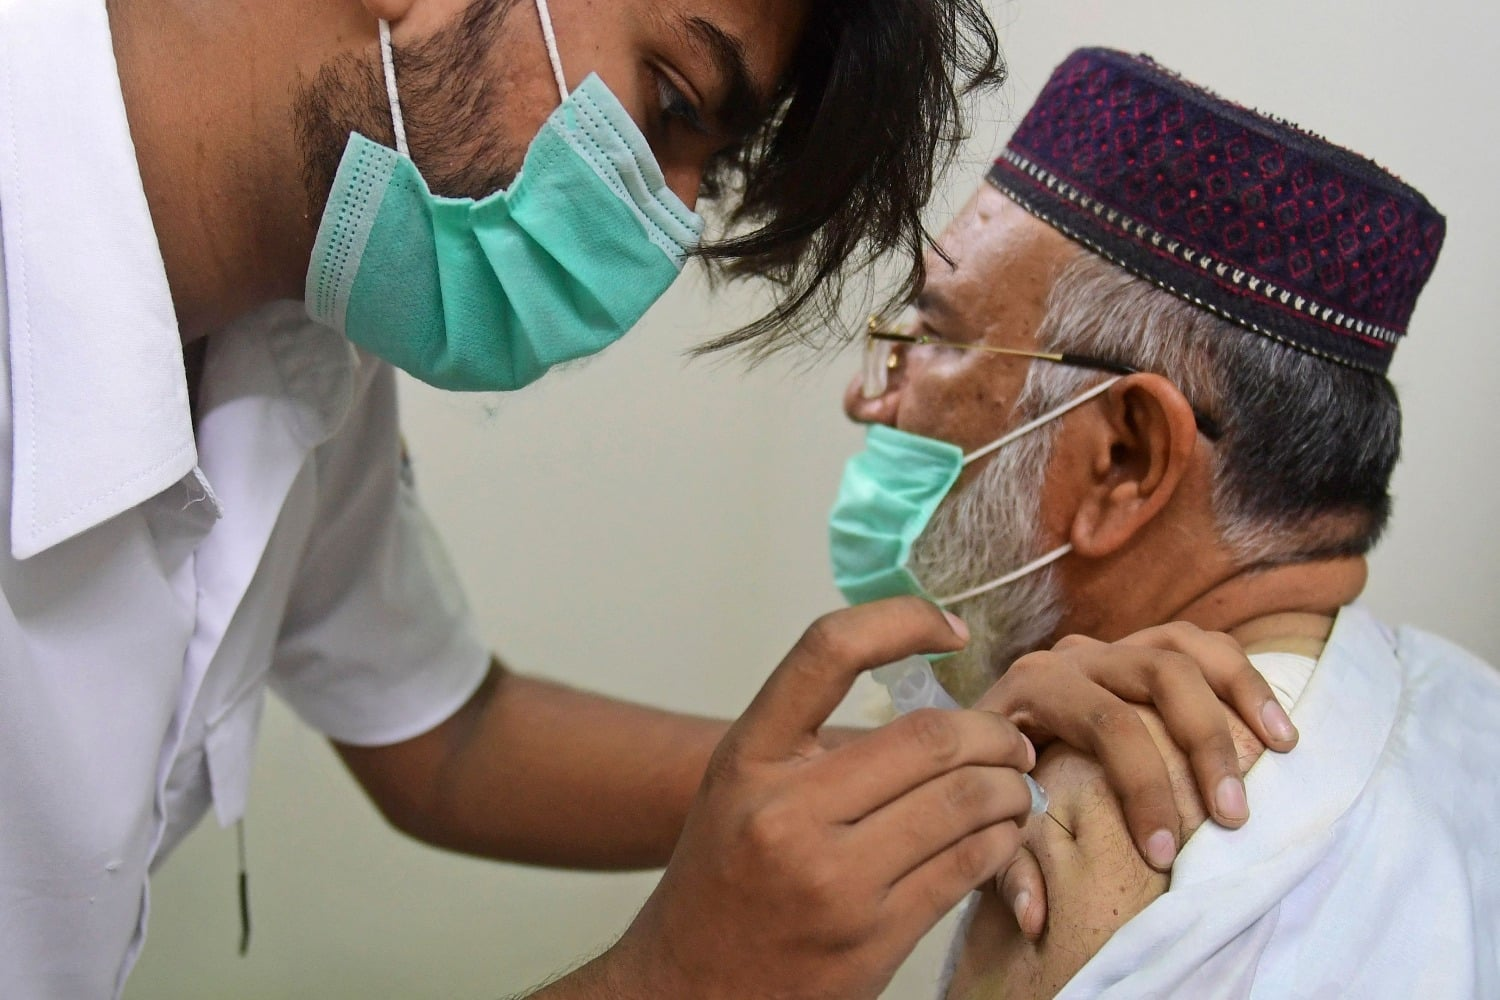 So far the country witnessed 25,320 fatalities of the pandemic since it emerged in 2020. Reuters